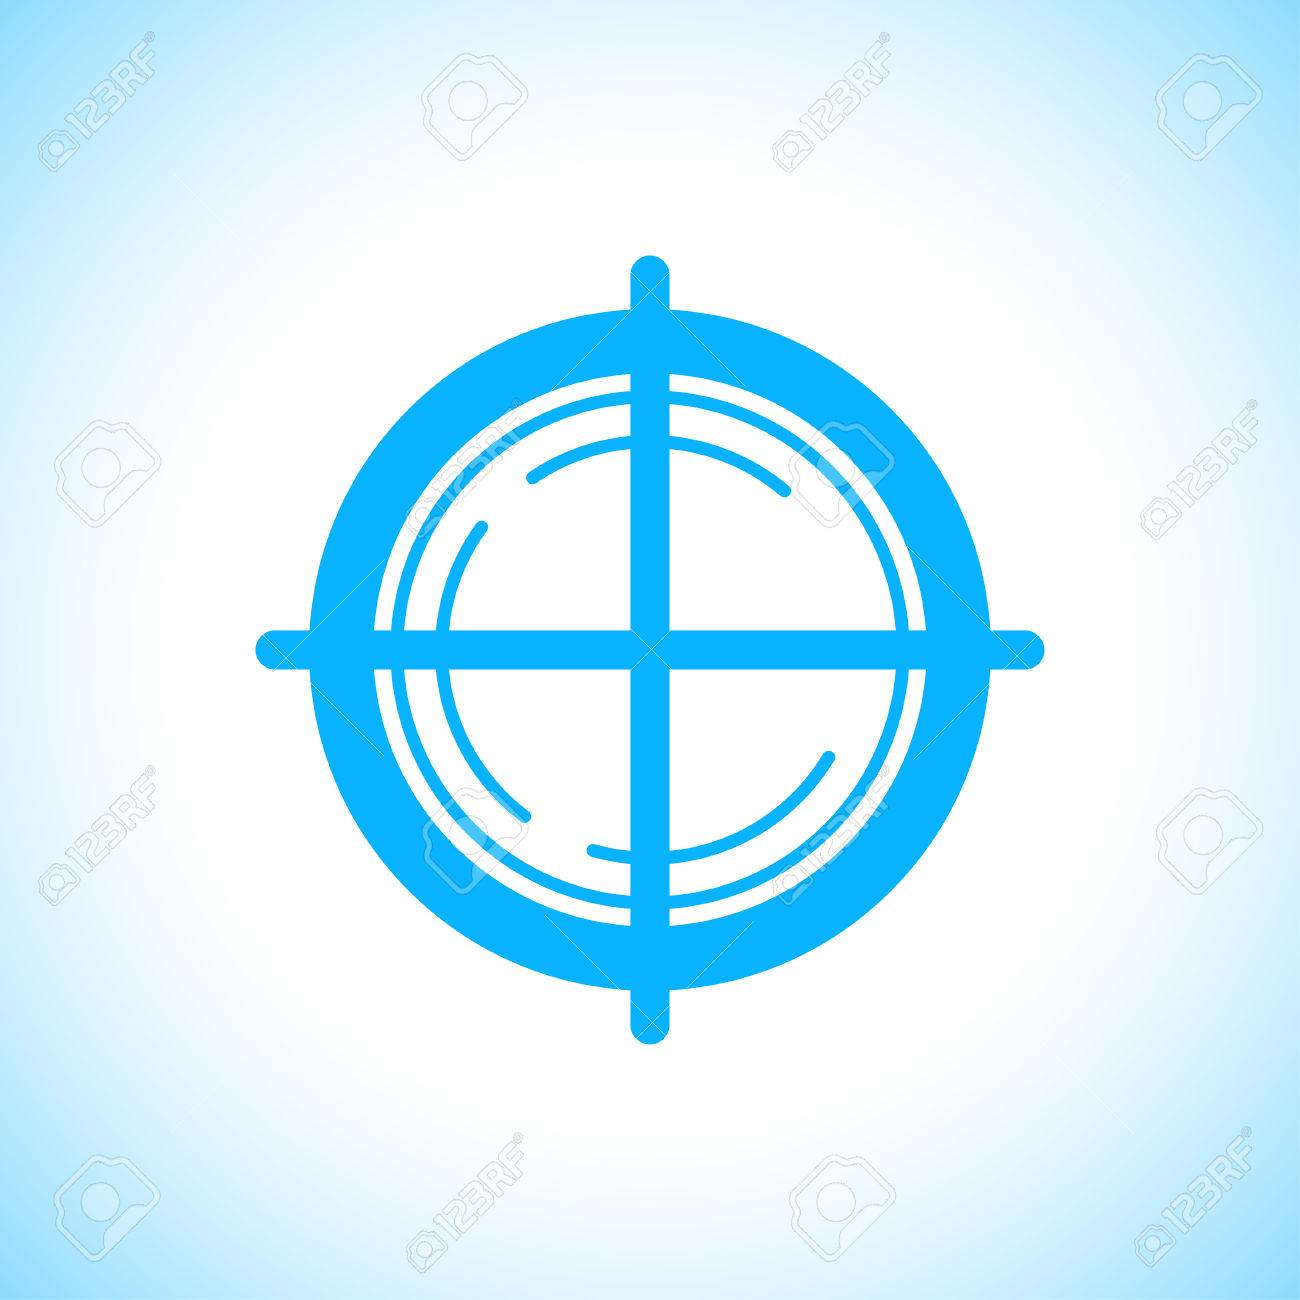 vector vector flat aim icon isolated on white background game target symbol sample design sniper shooting mark